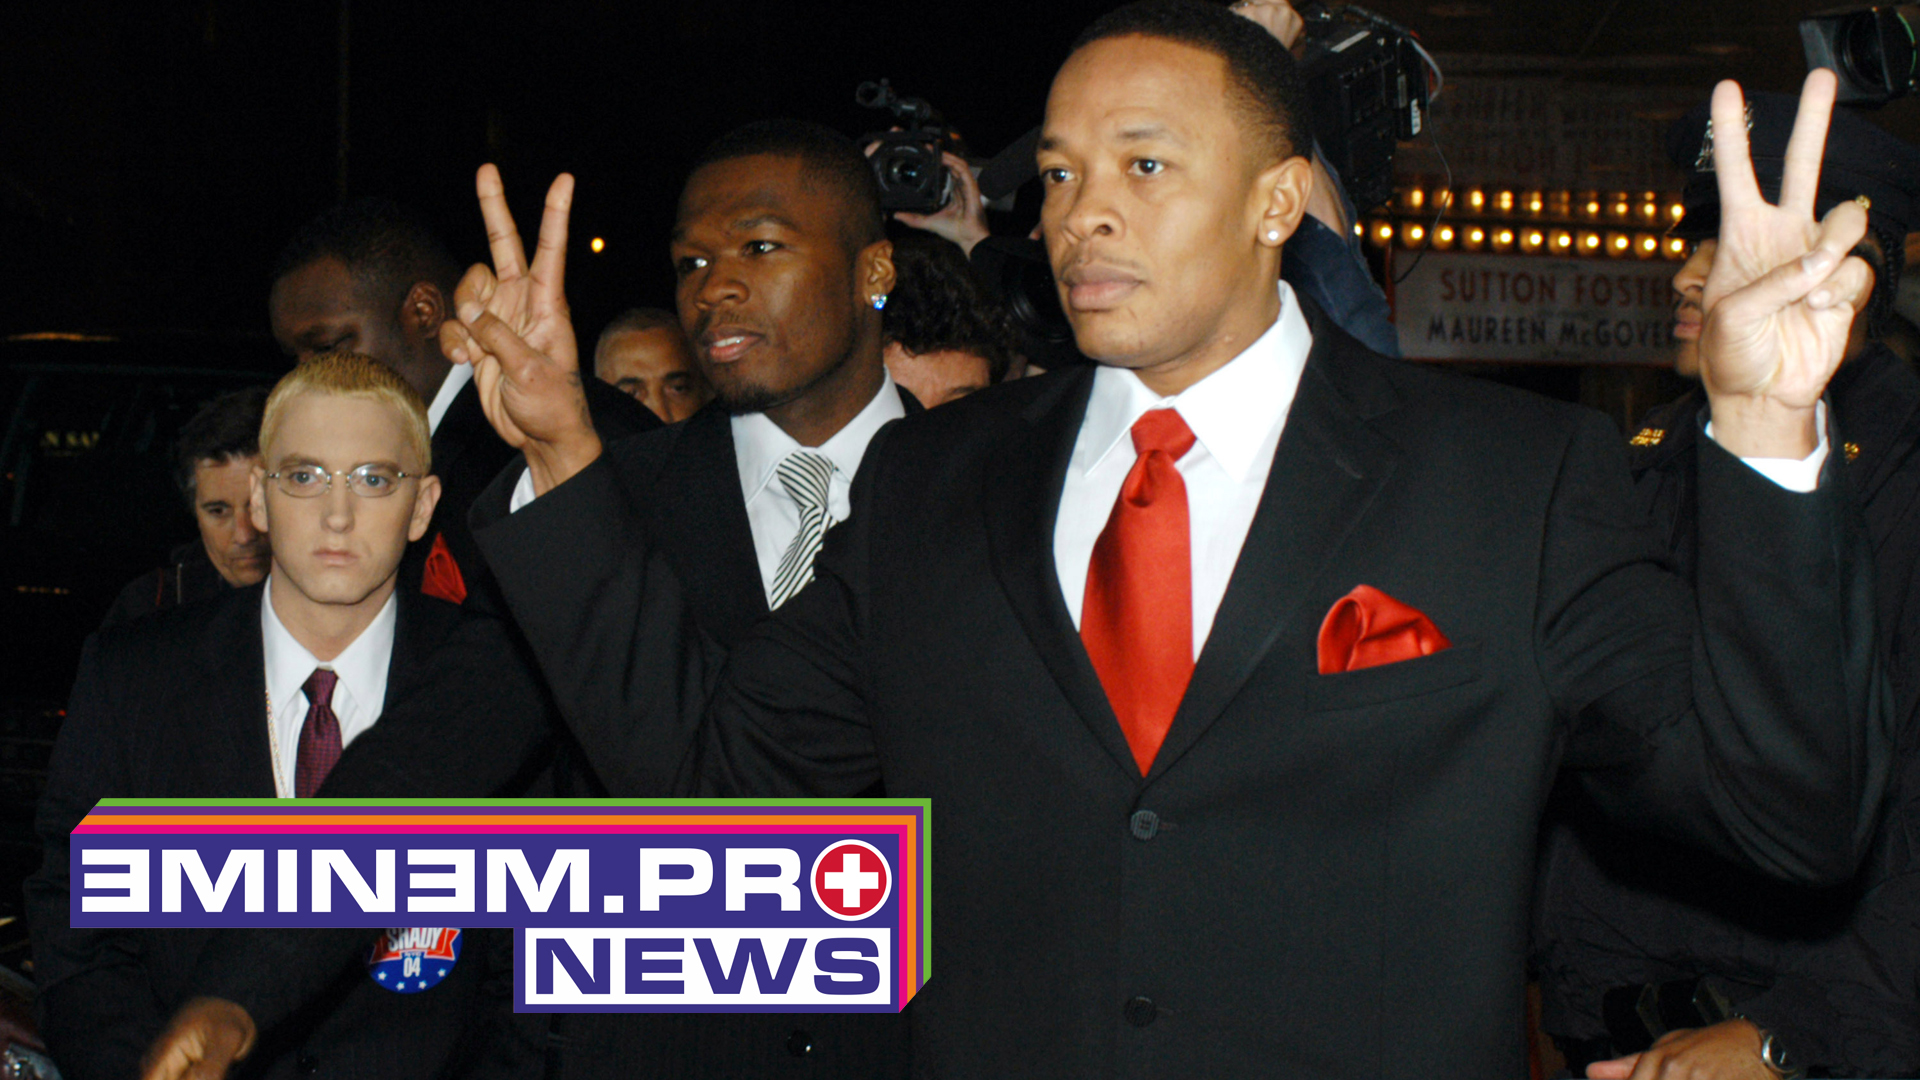 """ePro News 54: Dr. Dre continues work on """"Detox"""". All you want to know on Eminem's """"River"""" video premiere, 15th anniversary of 50 Cent's best album"""